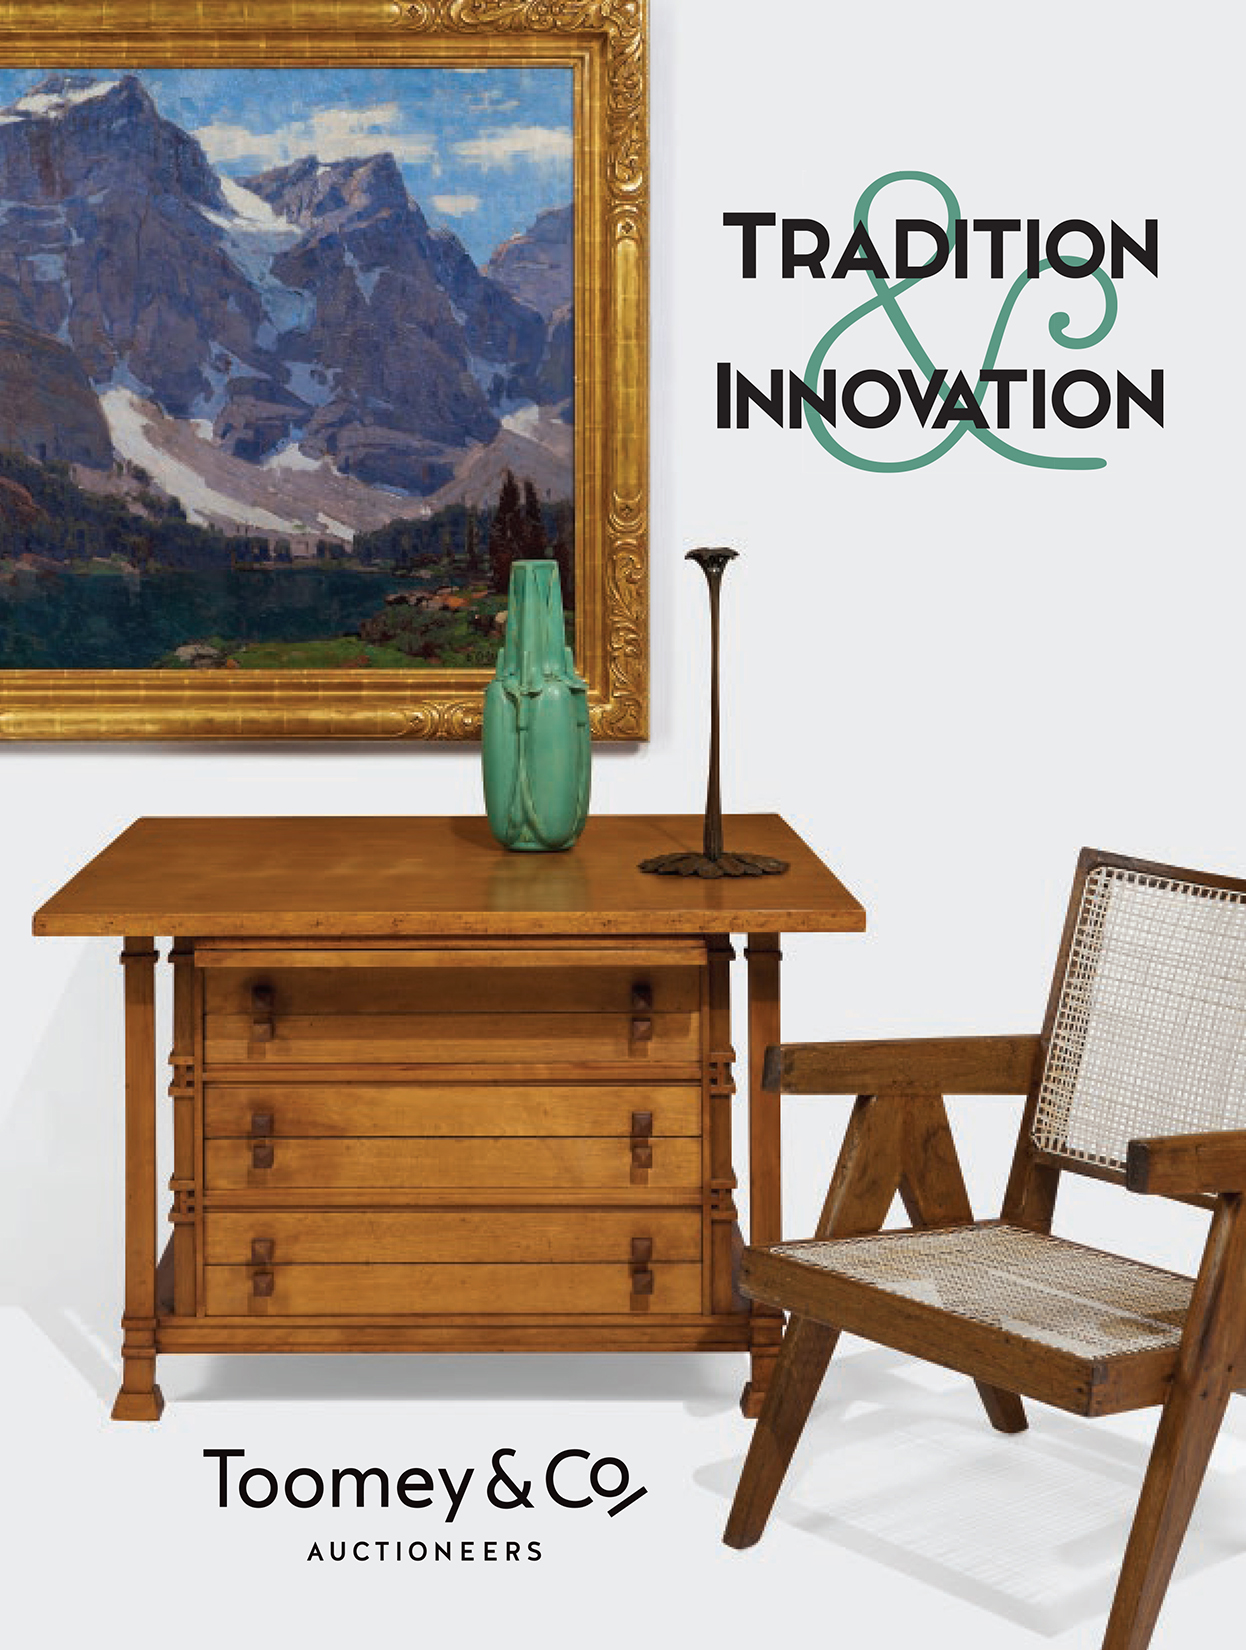 Tradition & Innovation Catalog, December 2, 2018